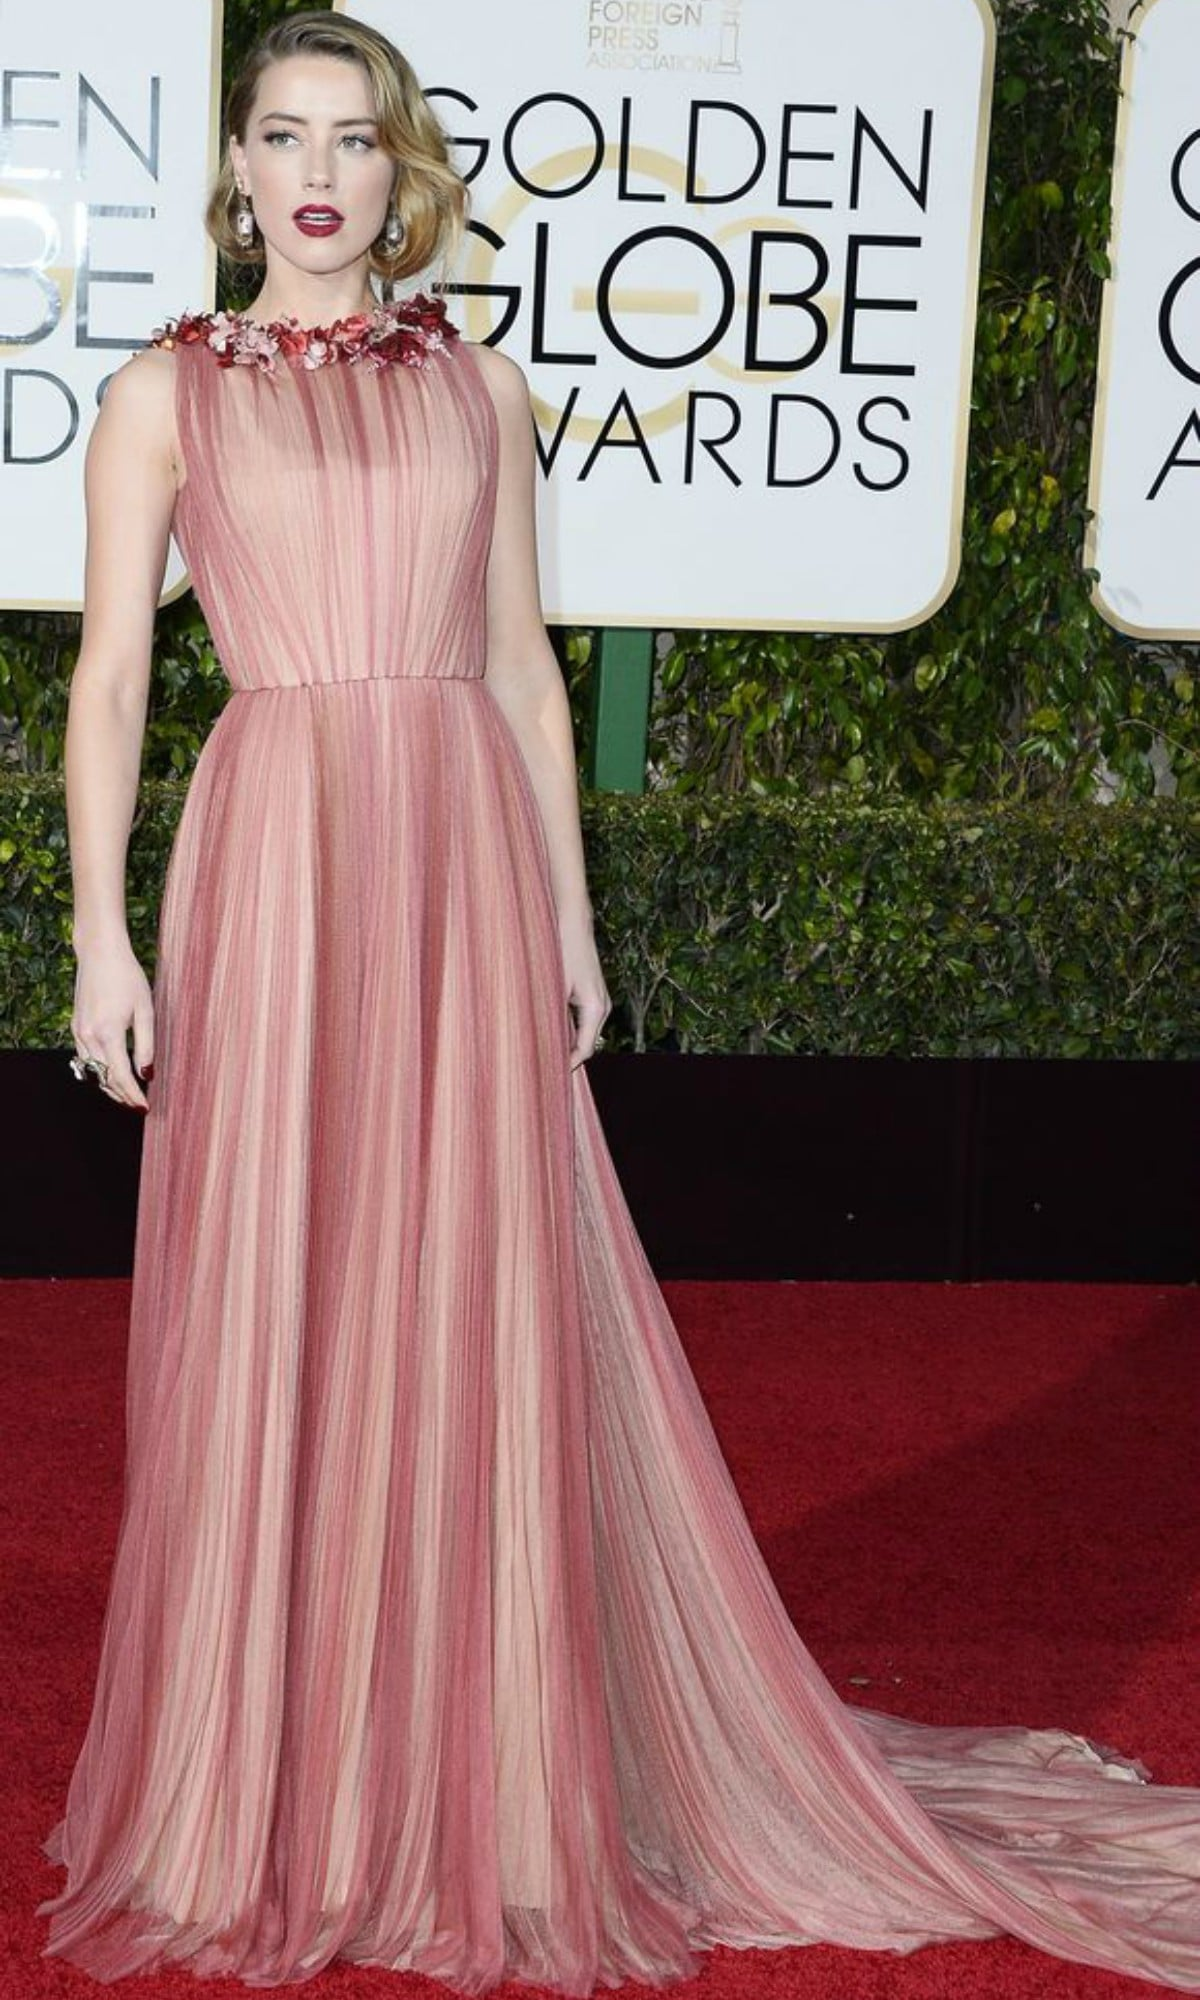 Golden Globes 2016 Who Won The Red Carpet Style Images